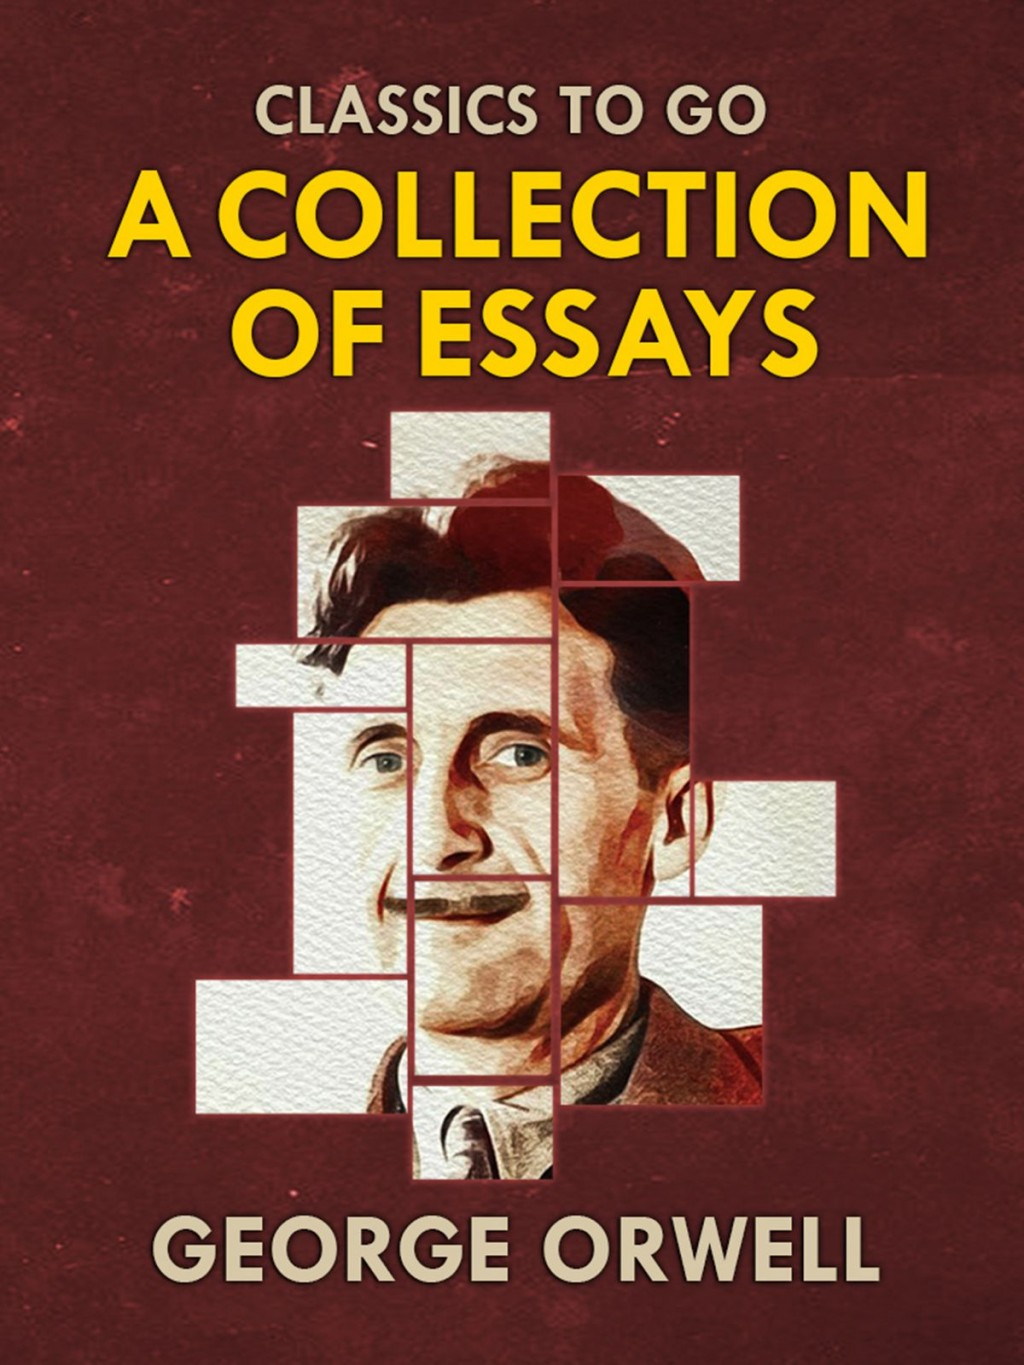 024 Collections Of George Orwell Essays Essay Frightening Everyman's Library Summary Bookshop Memories Large